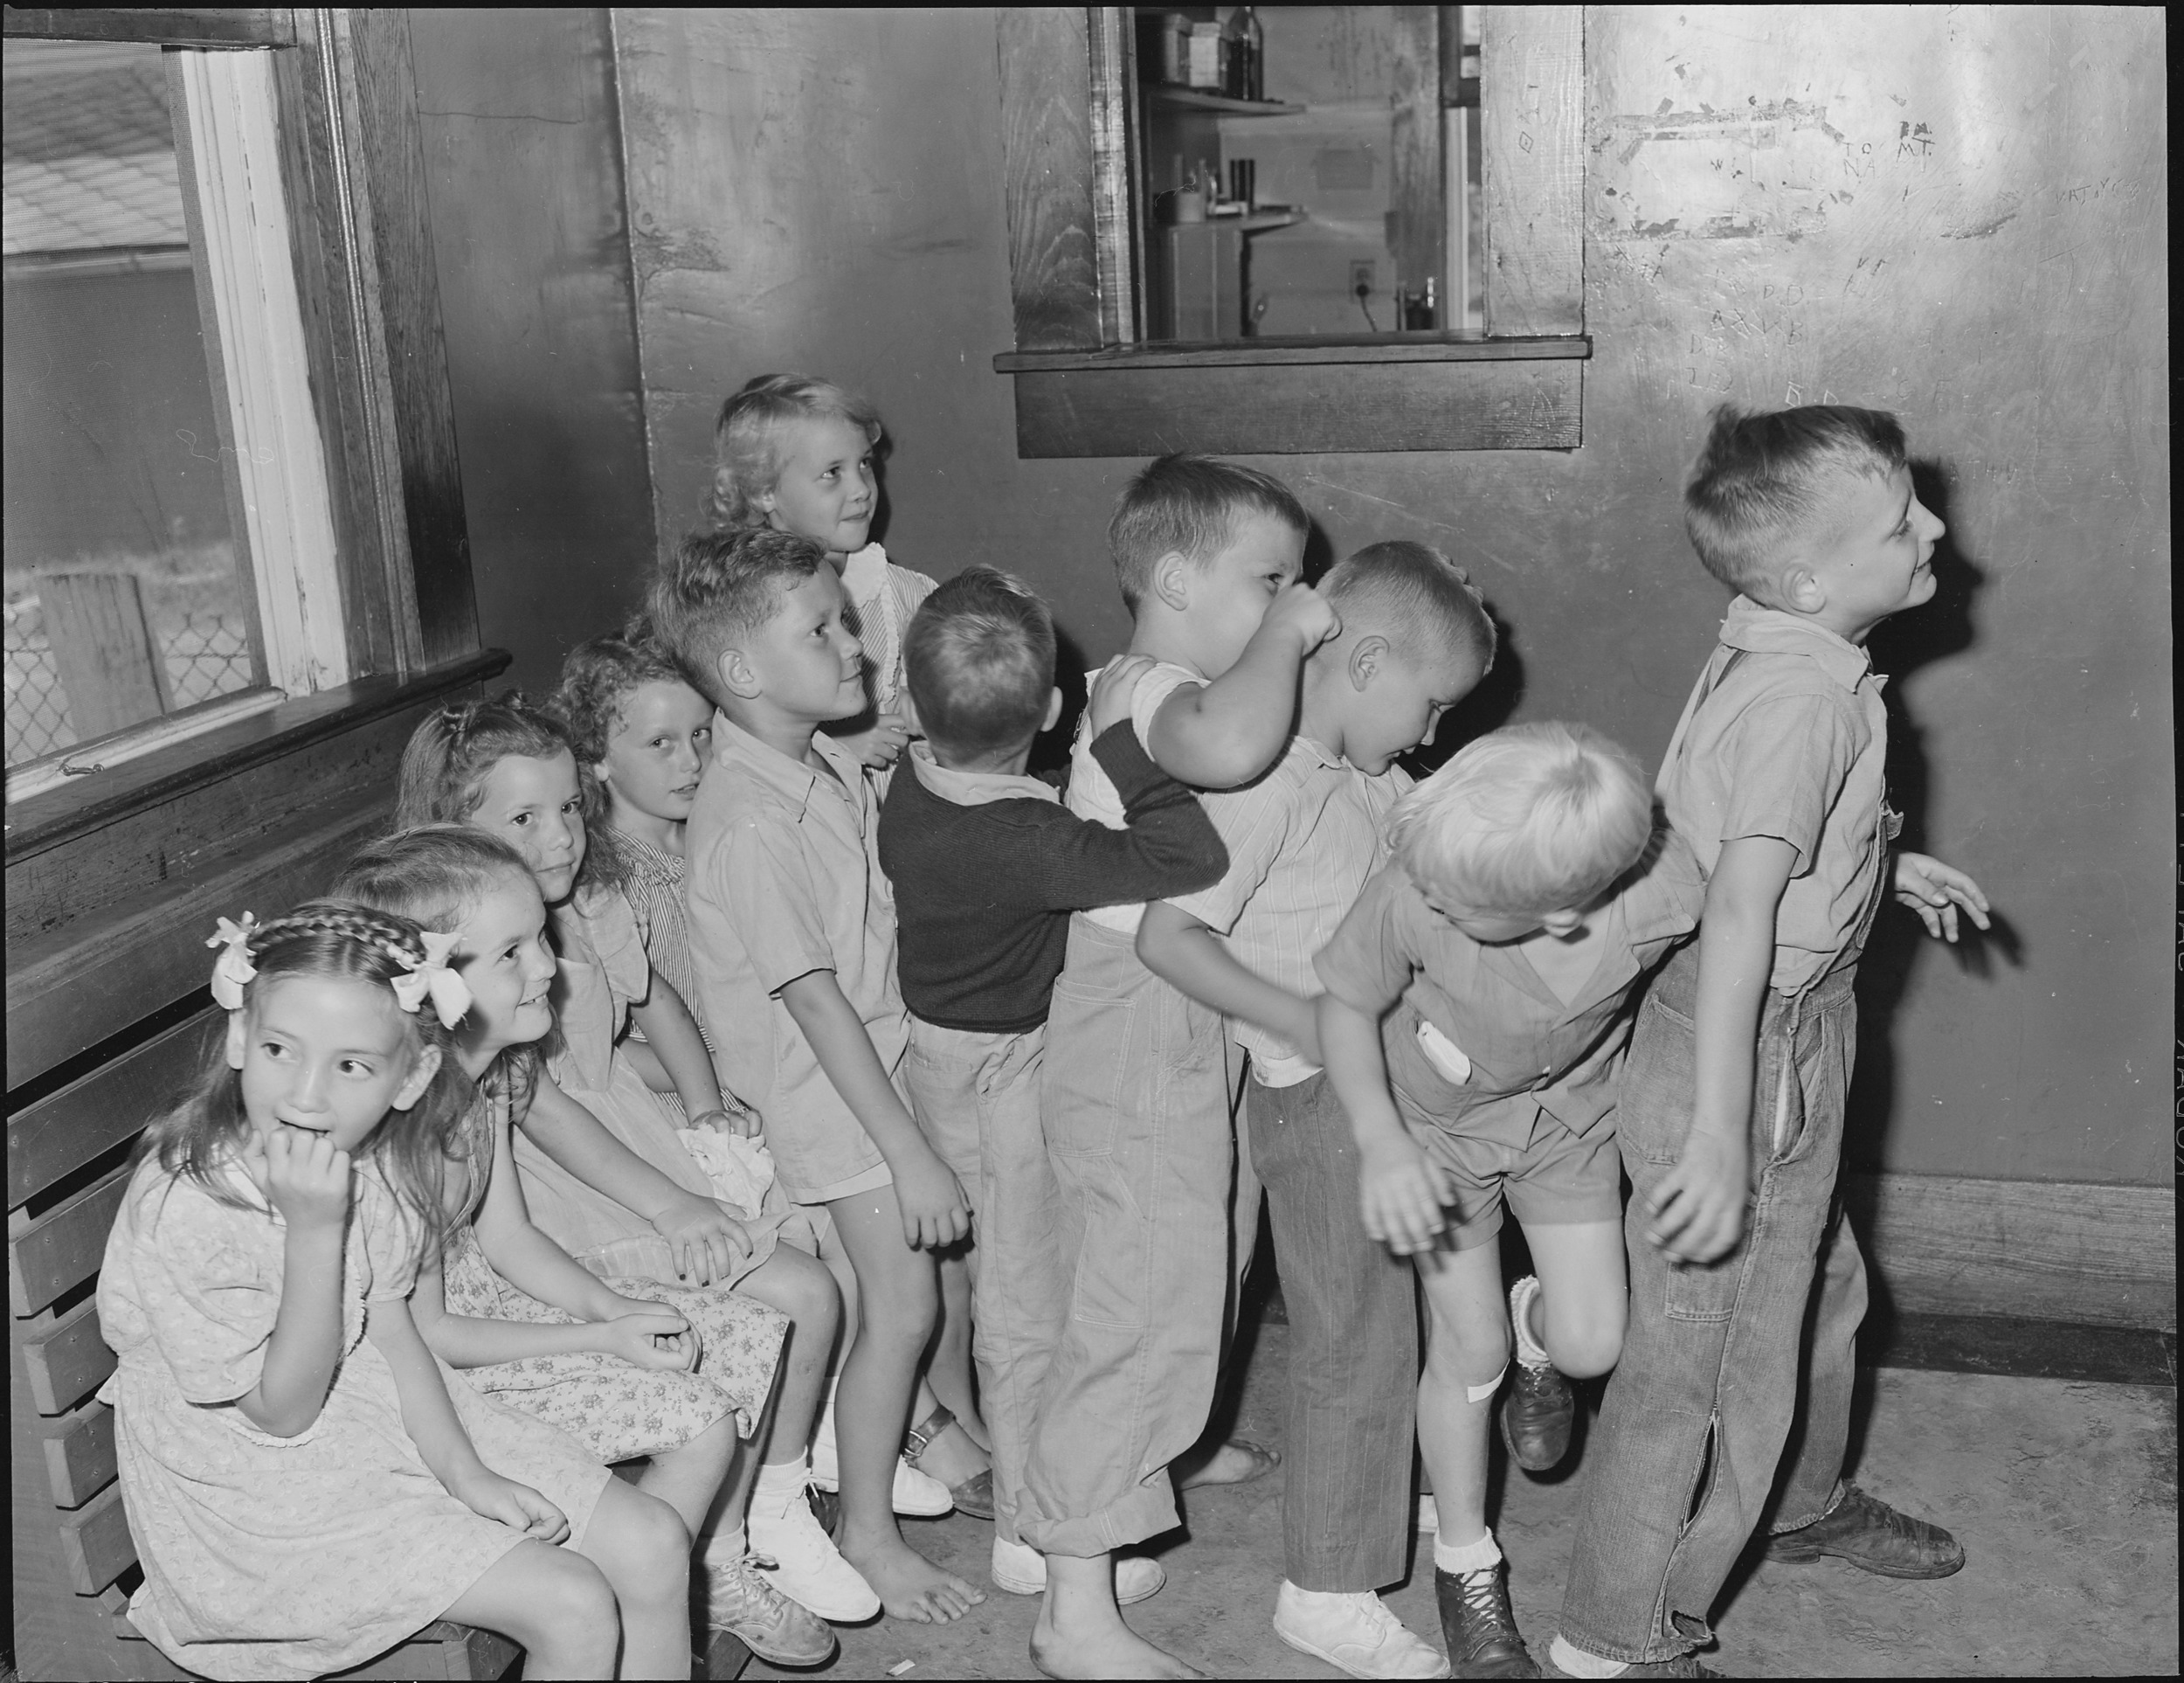 Children waiting for smallpox vaccinations and pre-school examinations (Virginia 1943).